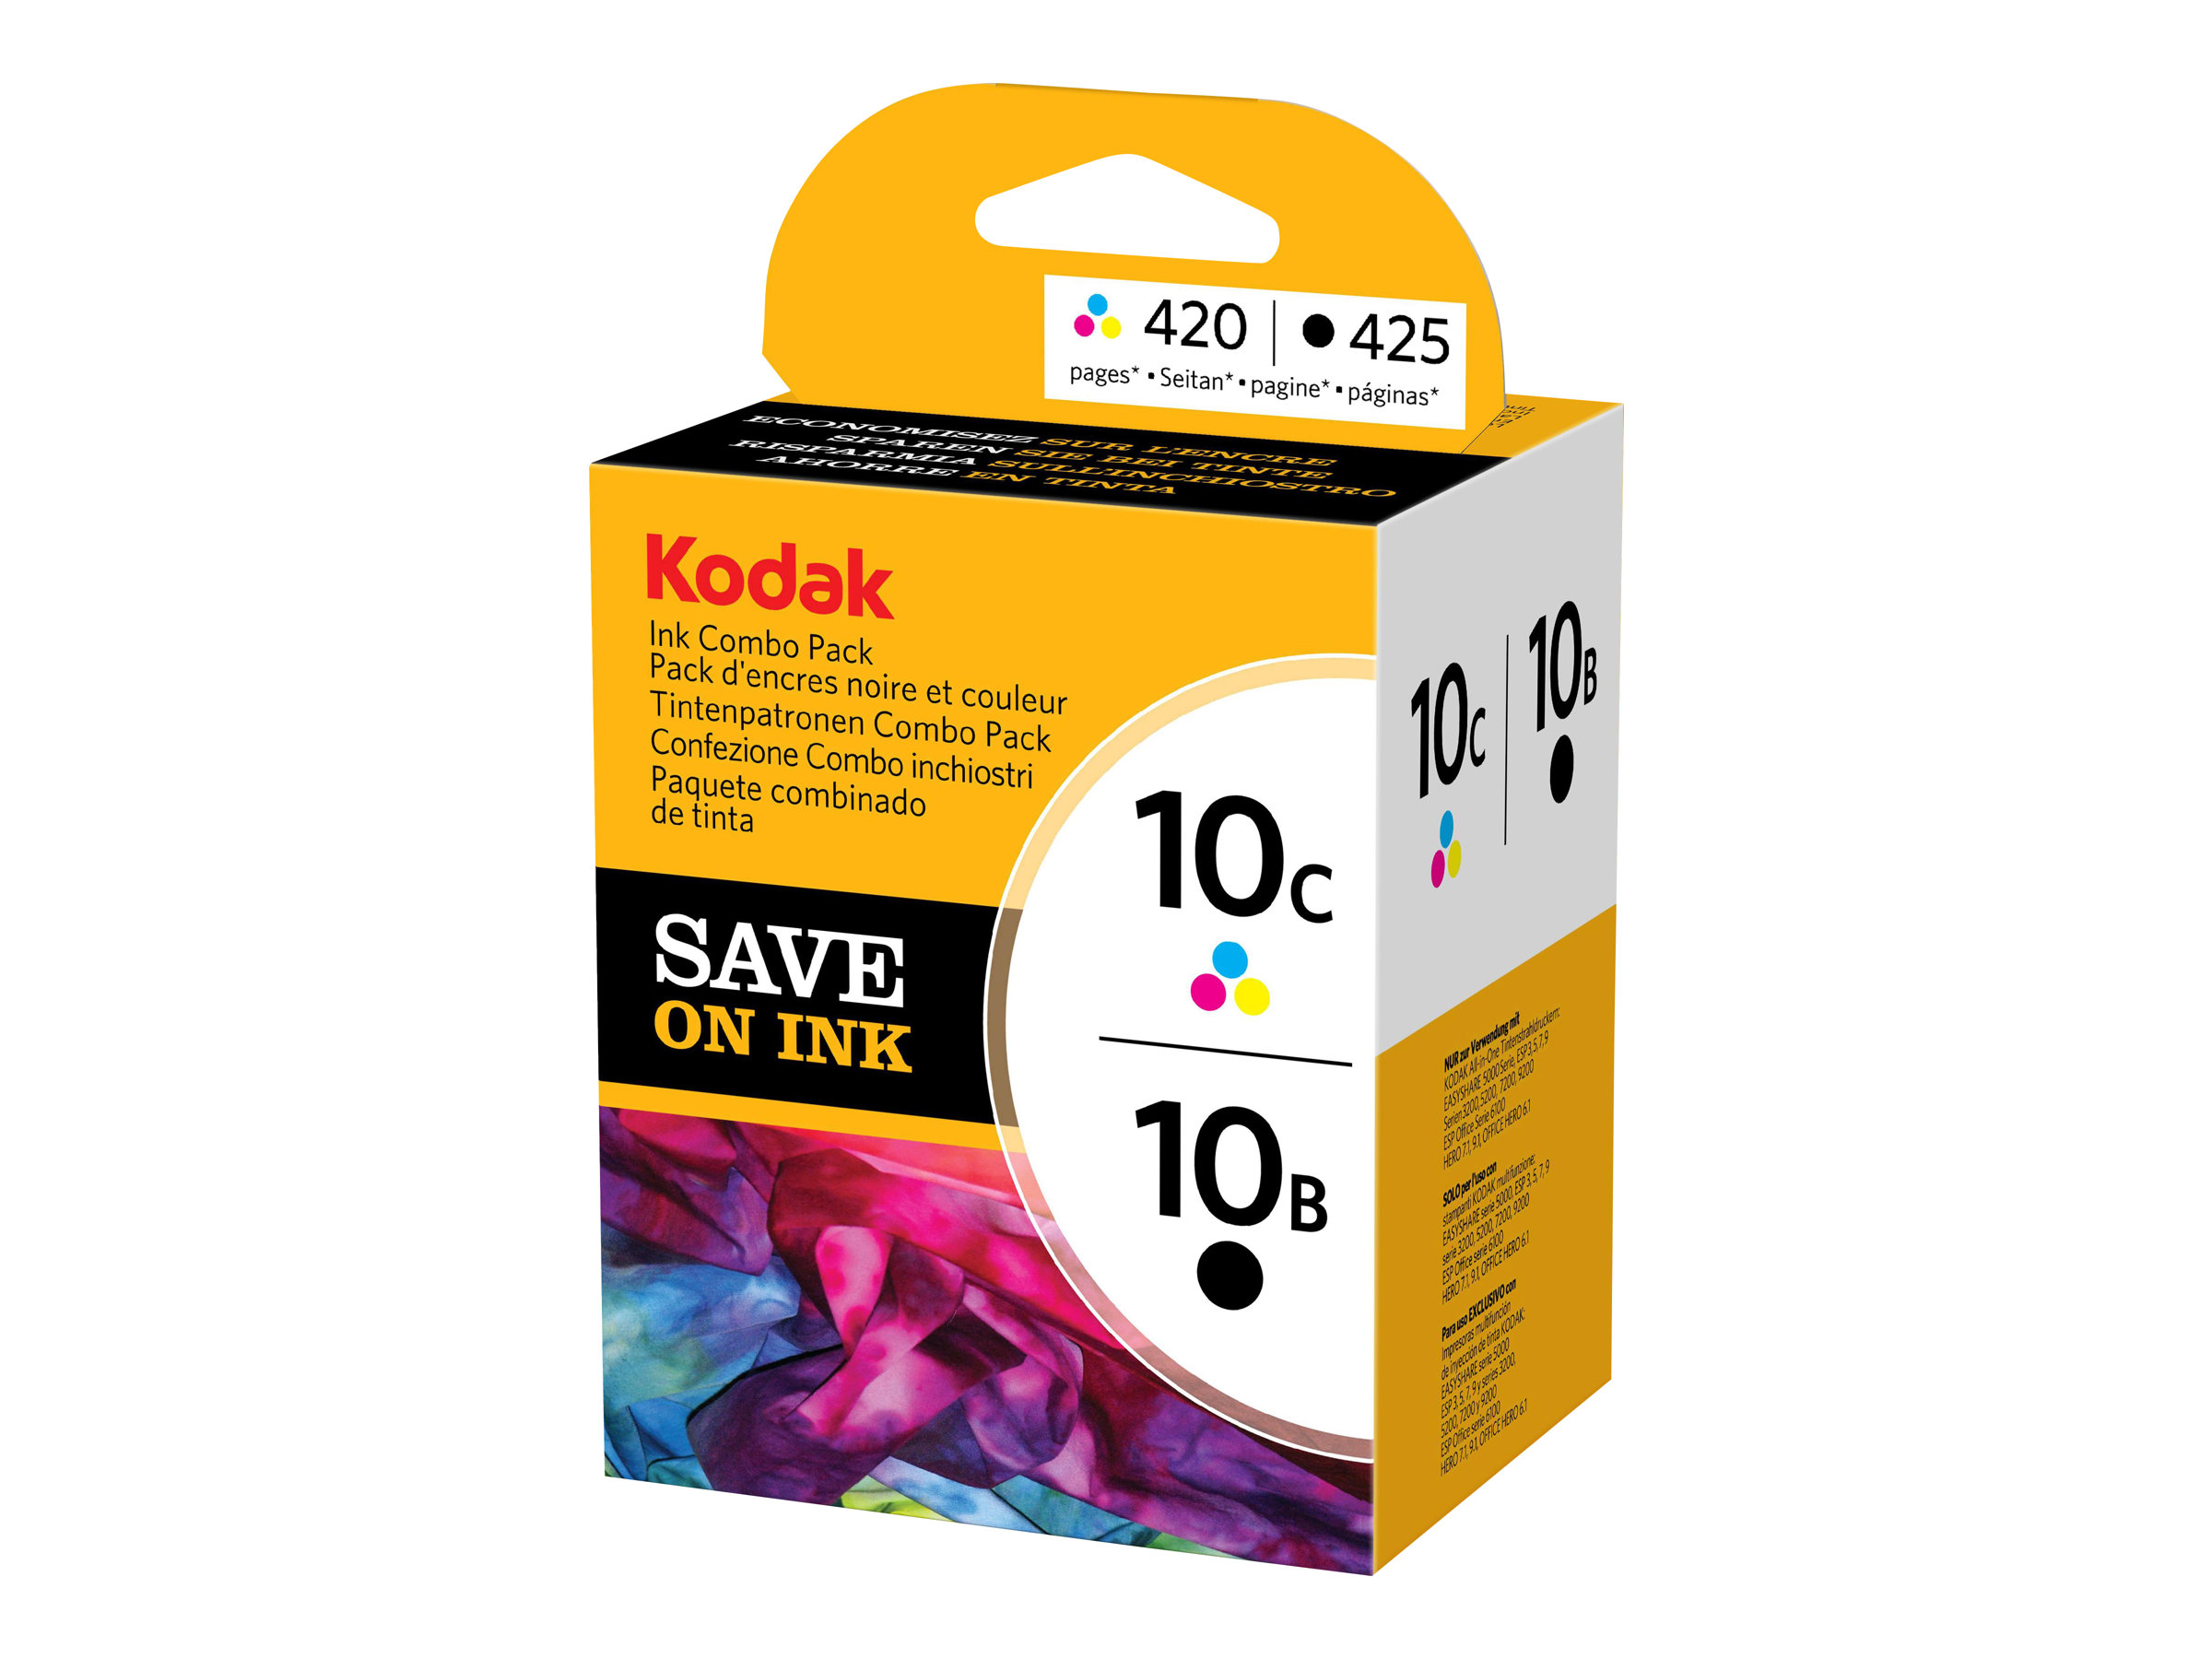 Kodak Ink Combo Pack - Schwarz, Multicolor - Original - Tintenpatrone - für ESP 3250, 5, 5250, 7, 7250, 9, Office 6150; HERO 6.1, 7.1, 9.1; OFFICE HERO 6.1